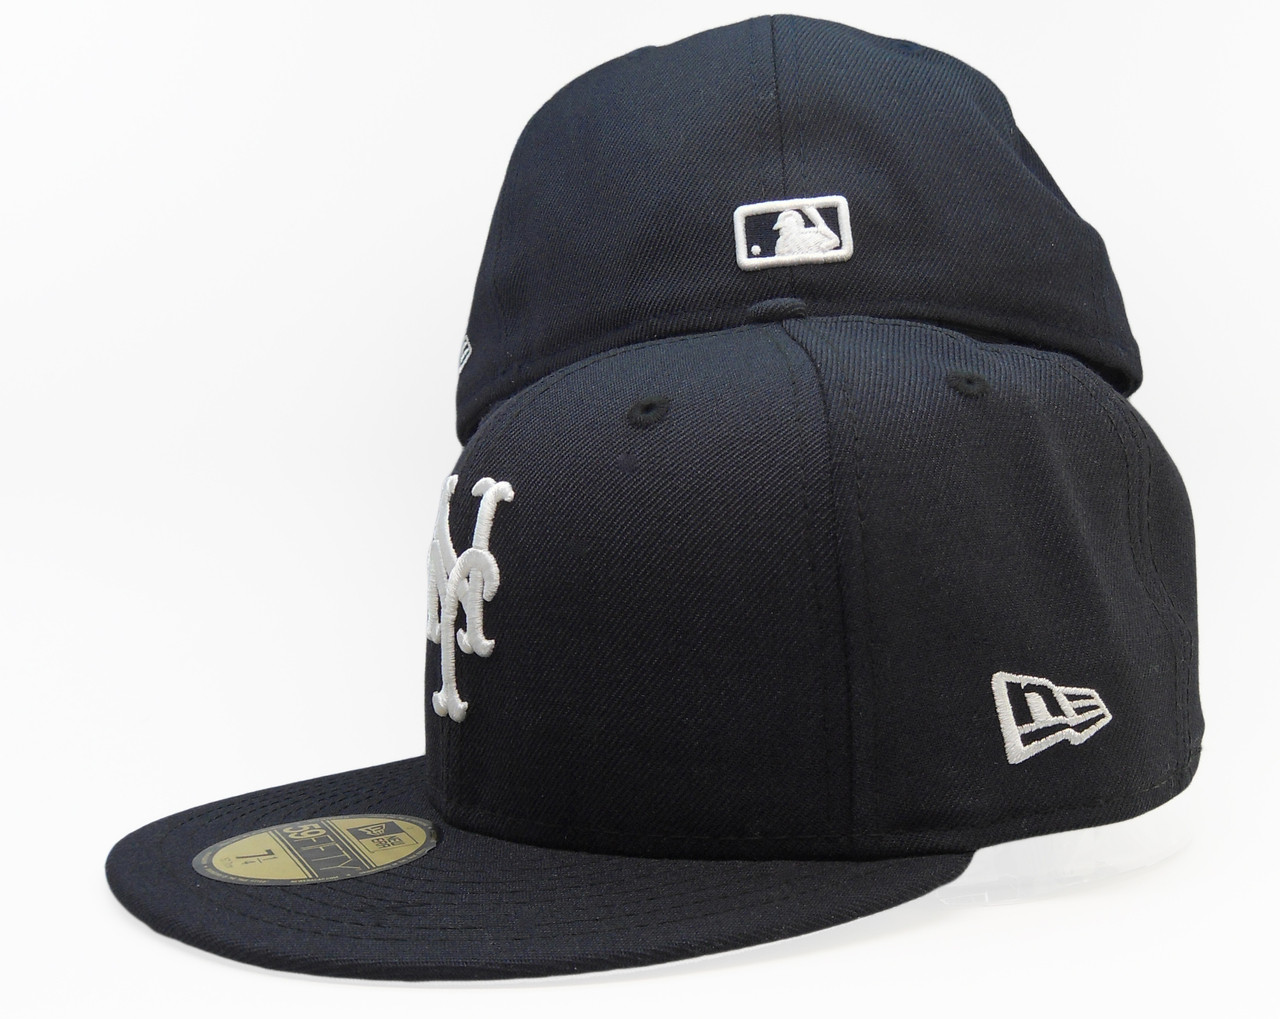 51e4ca79 New York Mets New Era 59Fifty Fitted Hat - Navy Blue, White